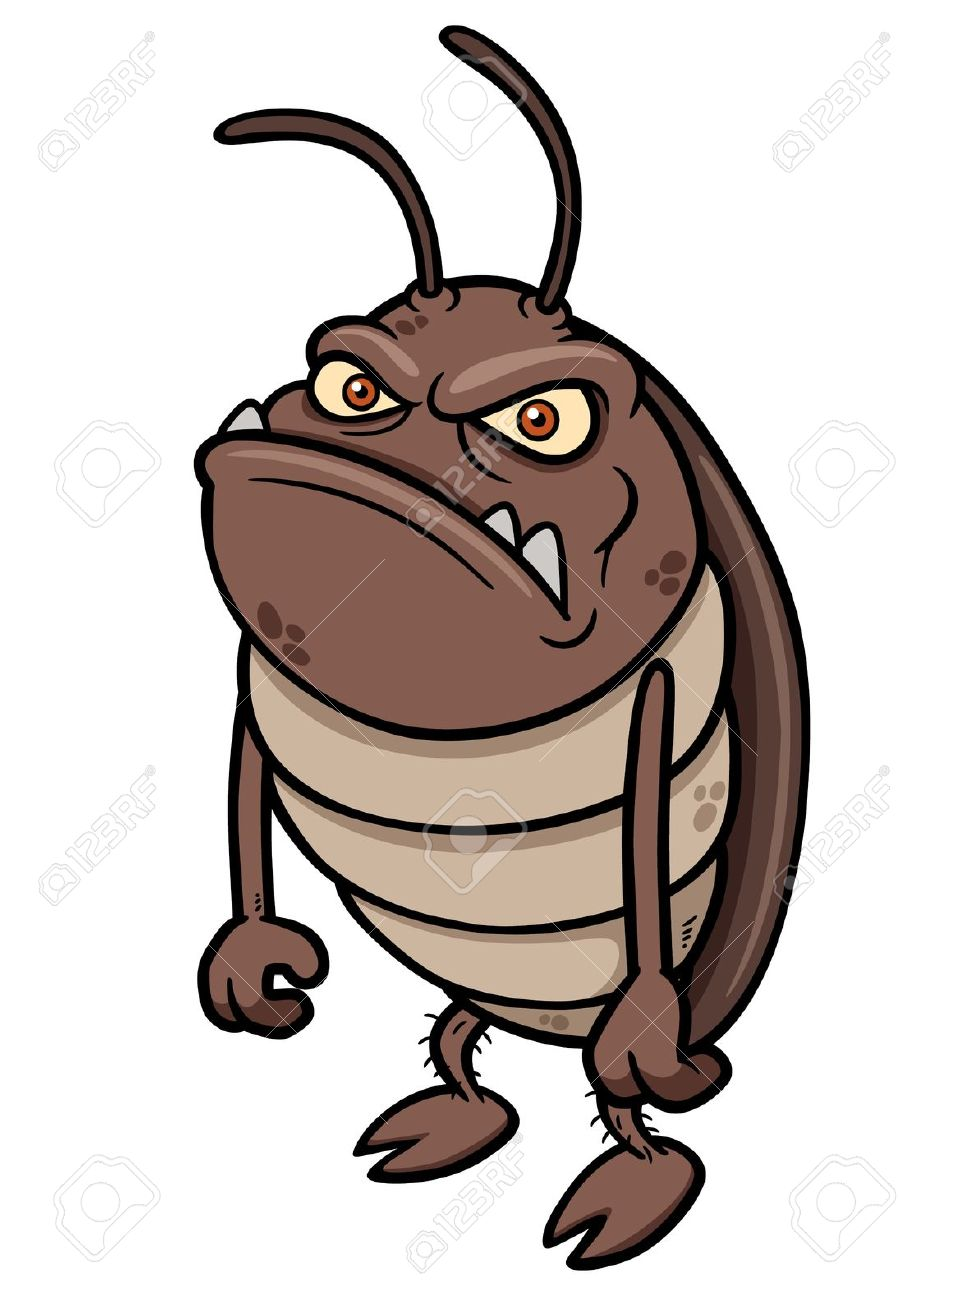 cartoon grumpy bug